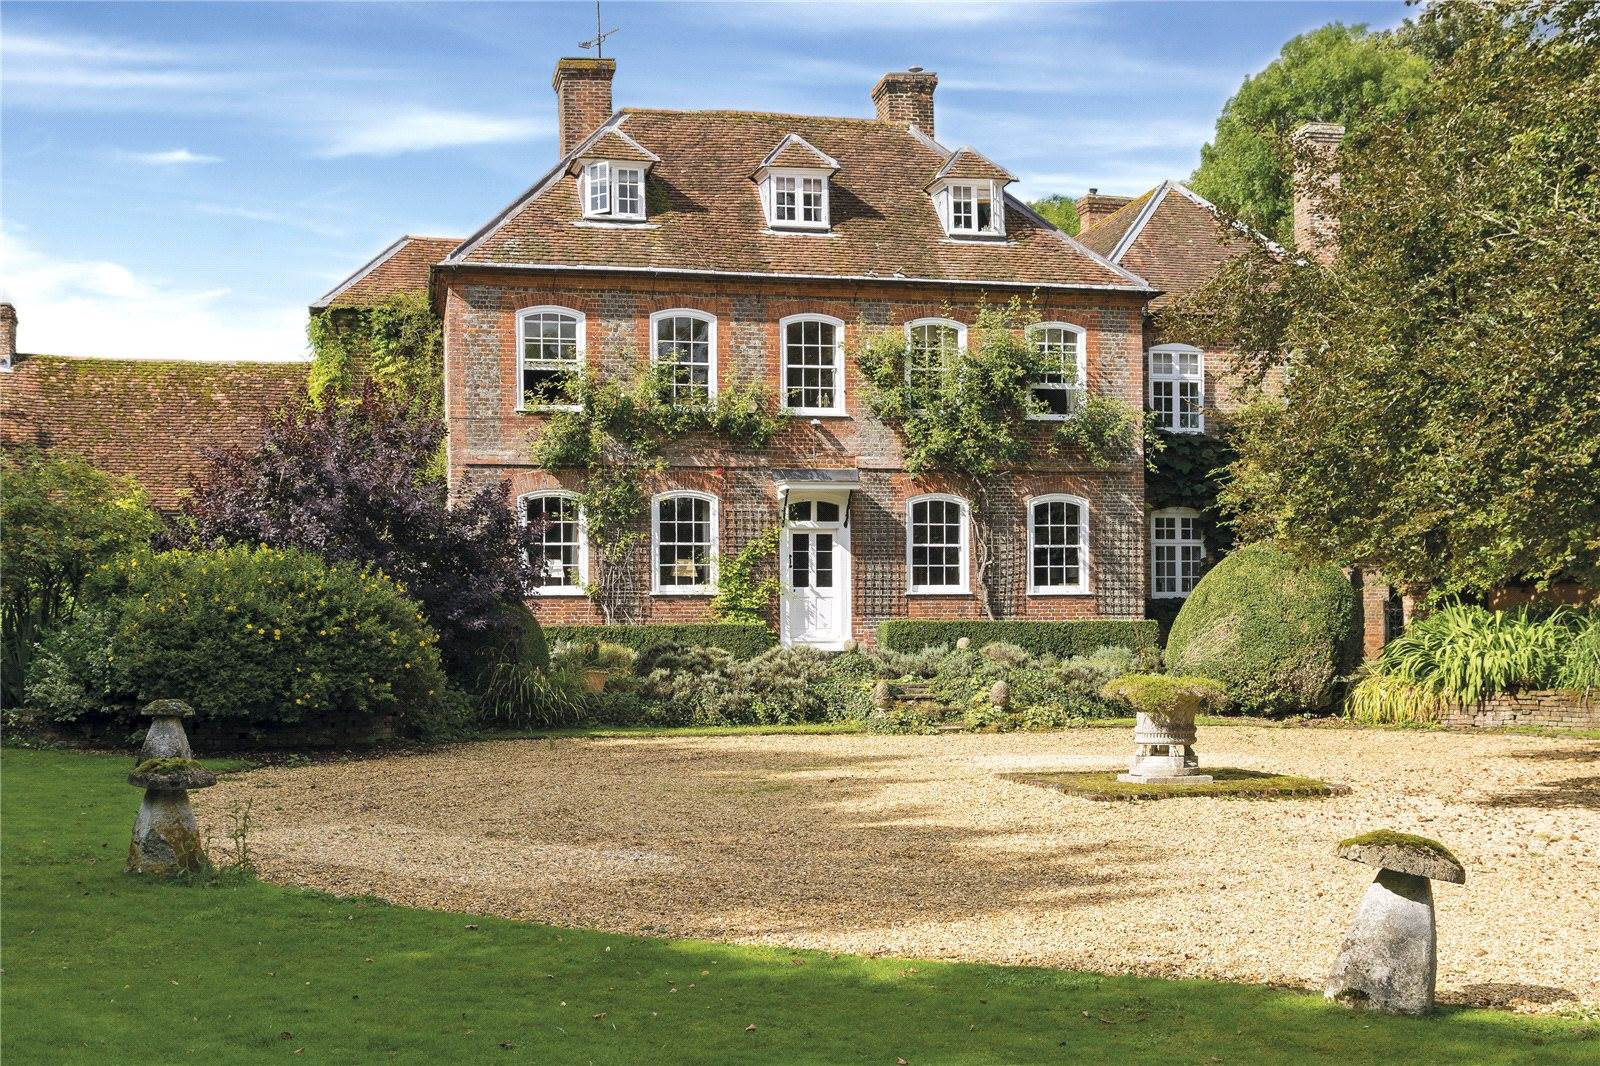 Salisbury England The Manor House Is A Grade II Listed Queen Anne Baroque On 23 Acres Of